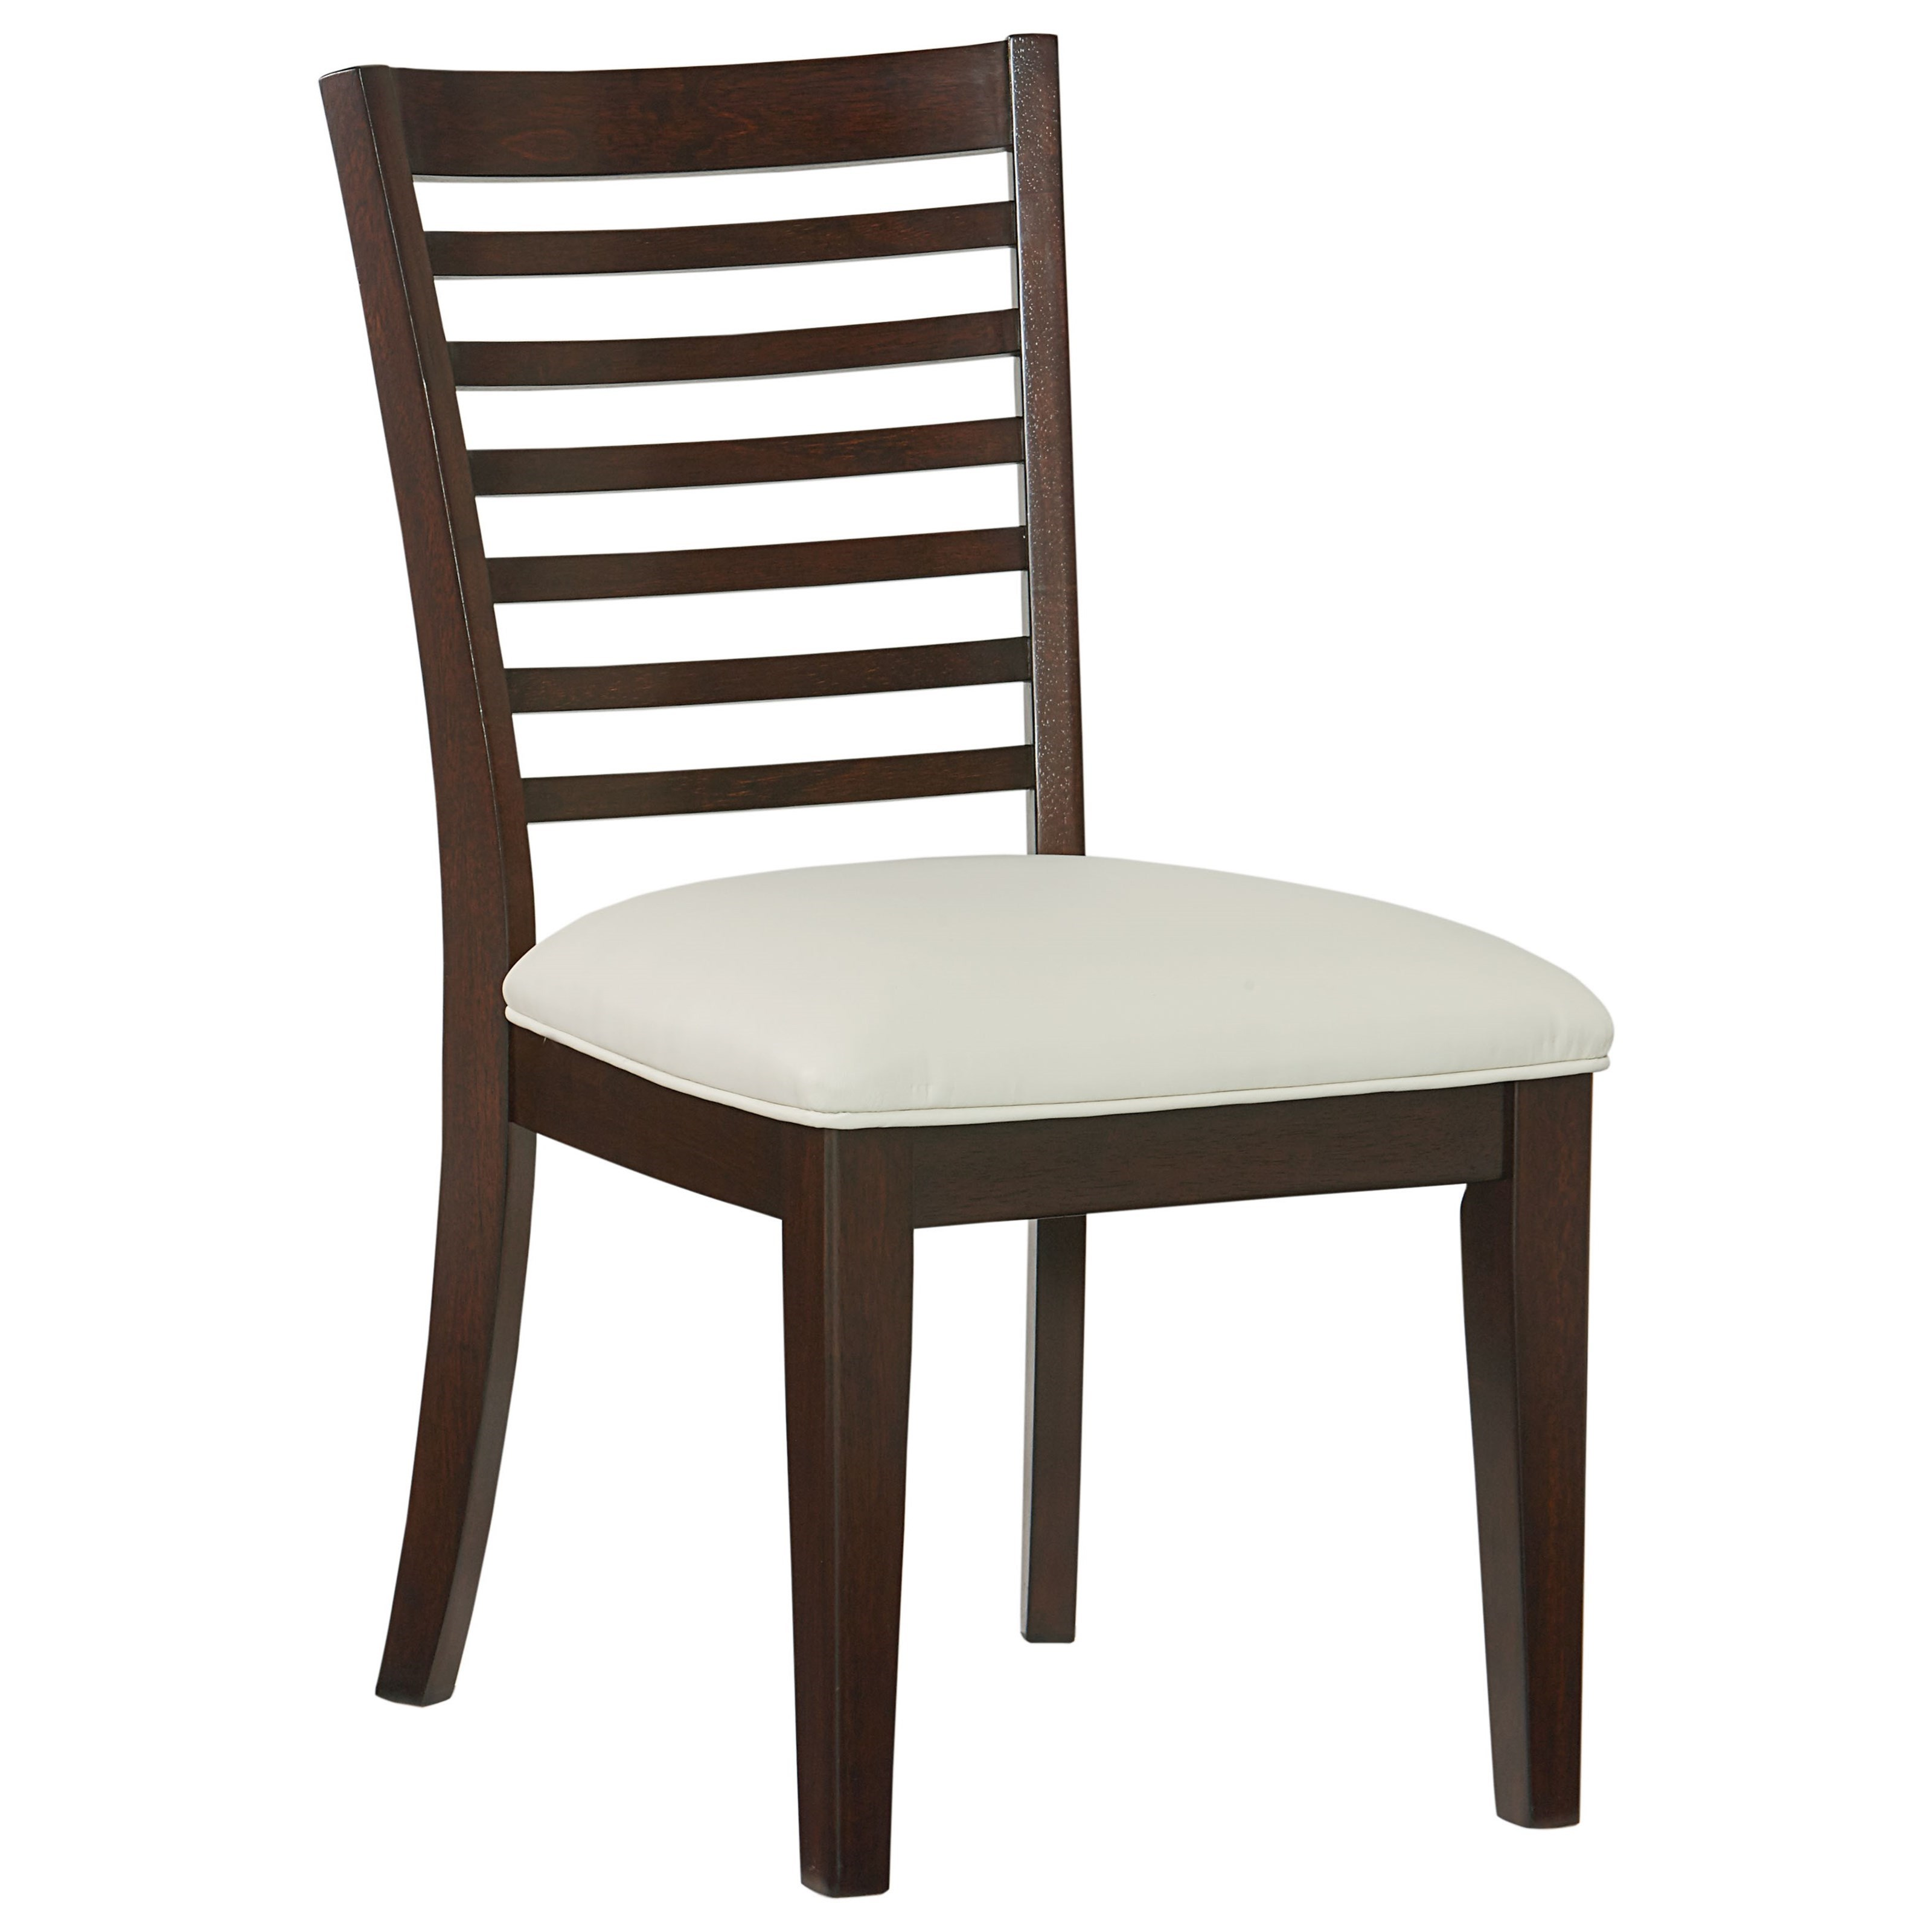 Standard Furniture Noveau Side Chair - Item Number: 17564